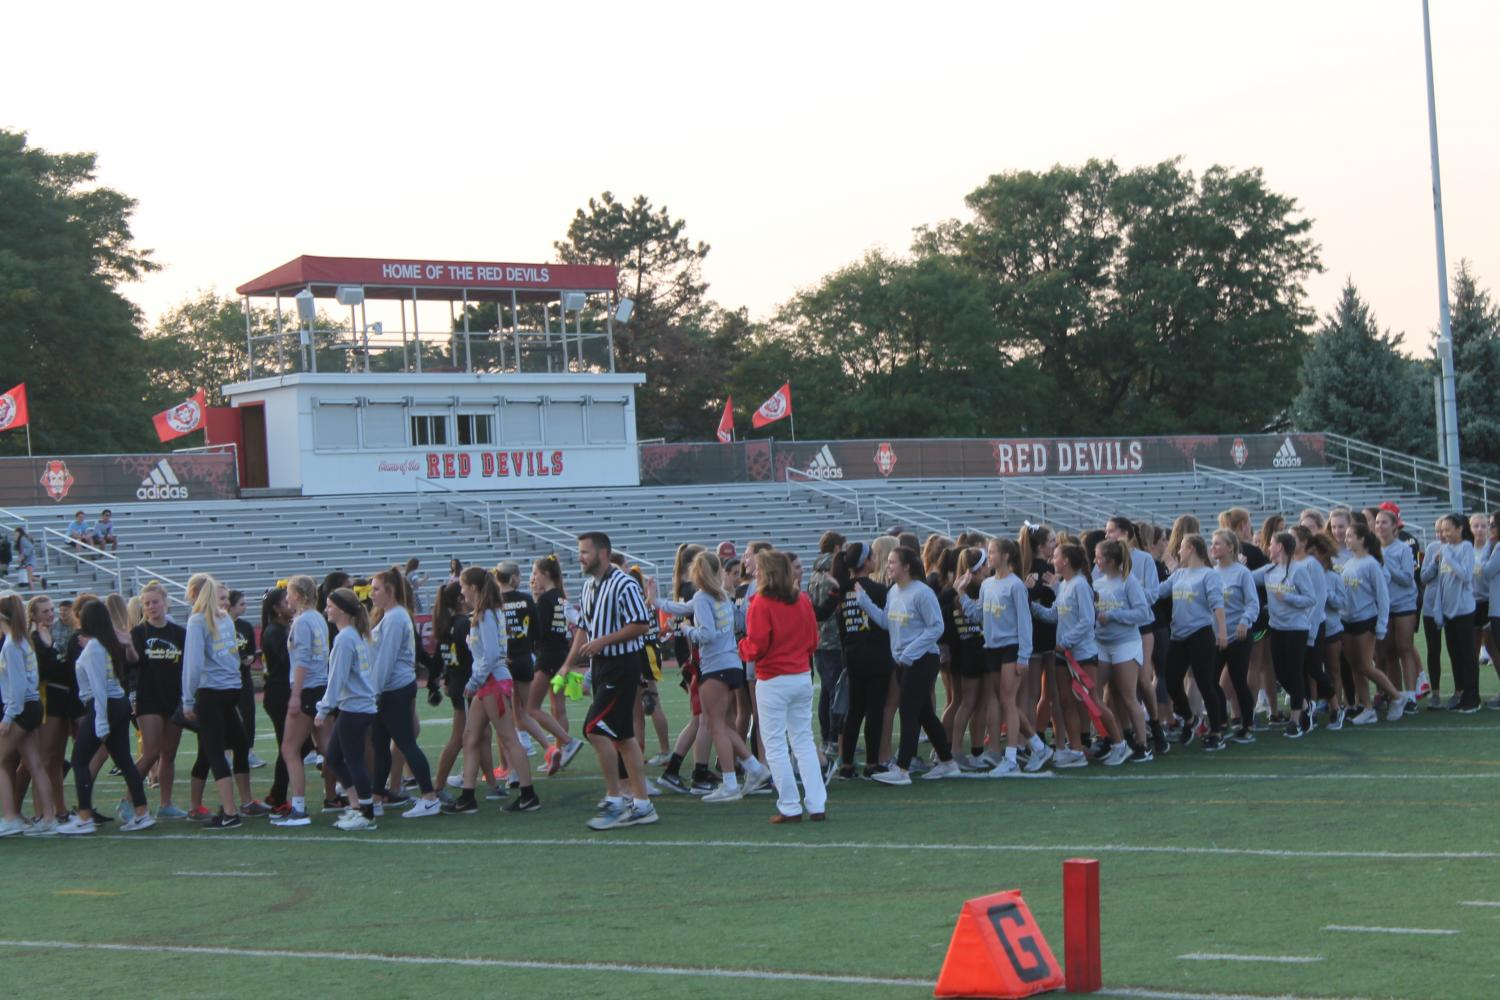 The juniors warmed up before the start of the annual powderpuff game against the seniors. The game marks the beginning of homecoming week.